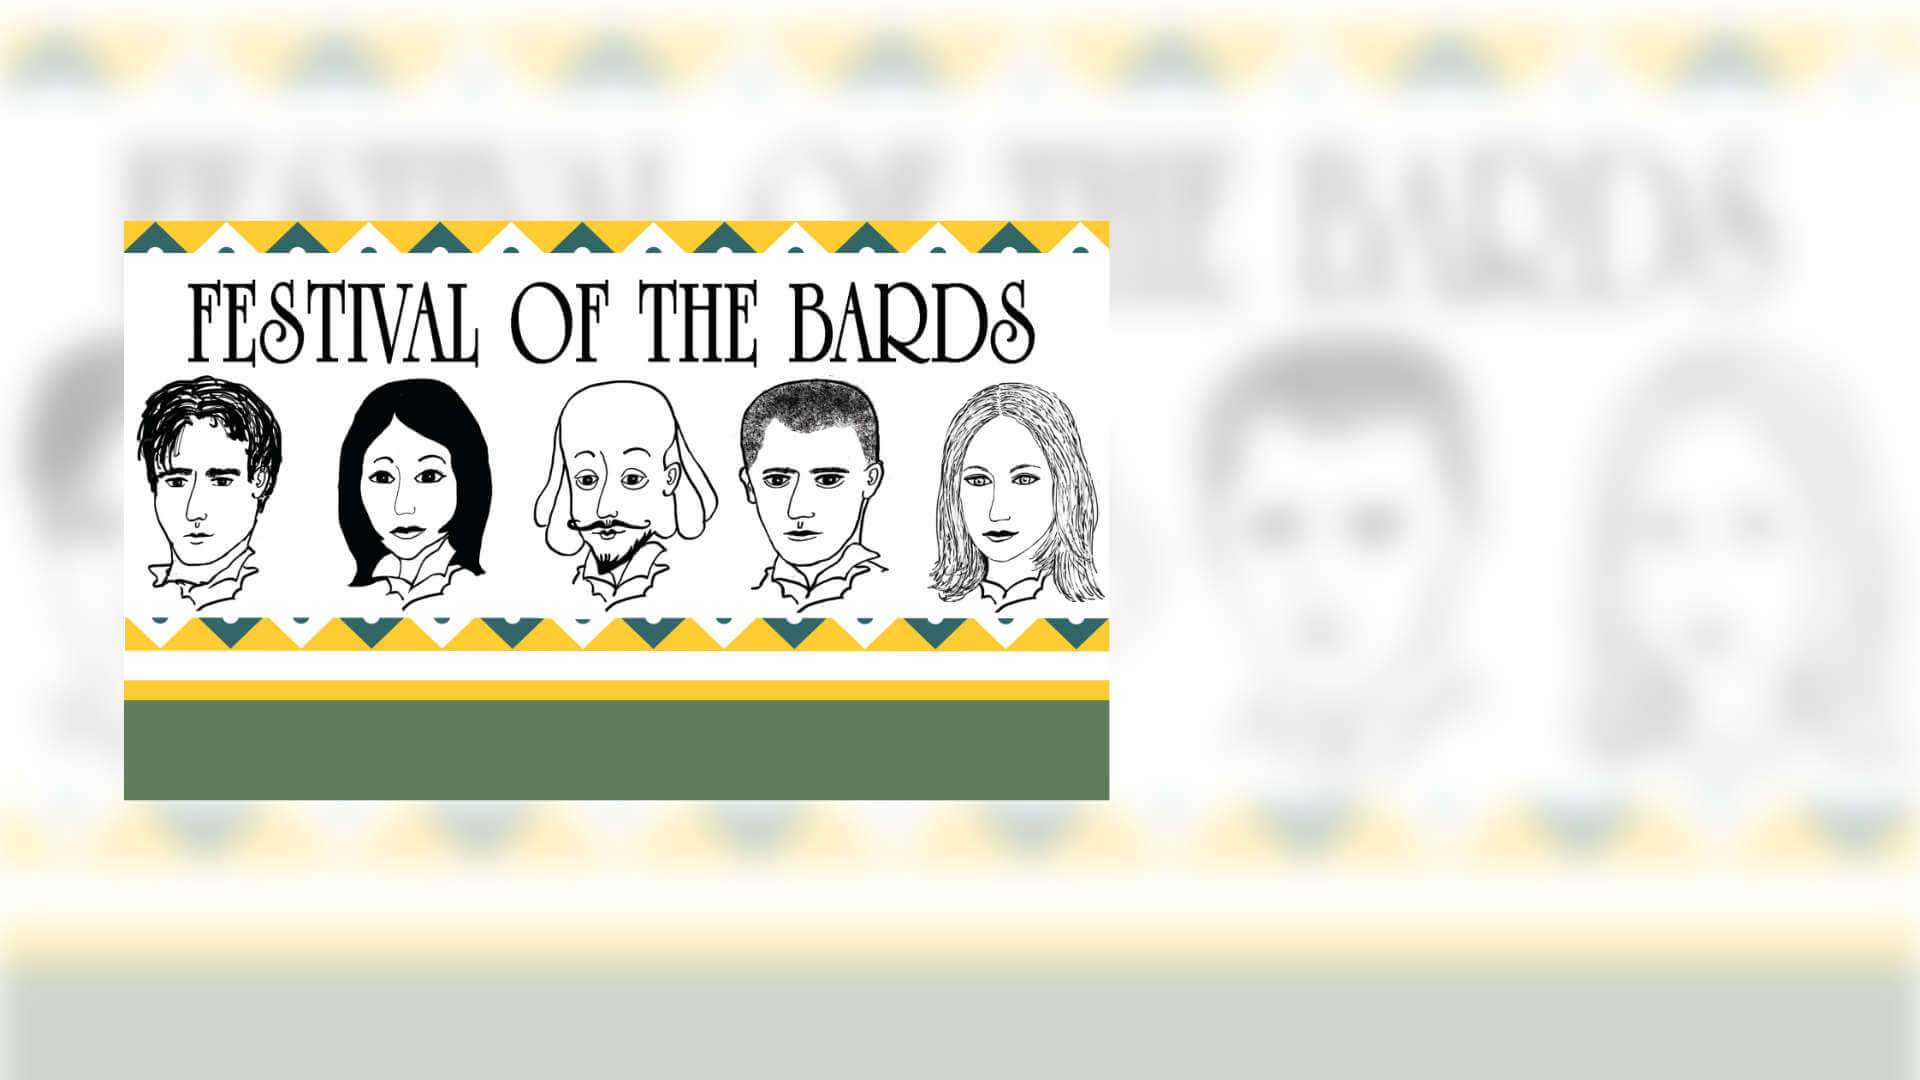 Festival of the Bards